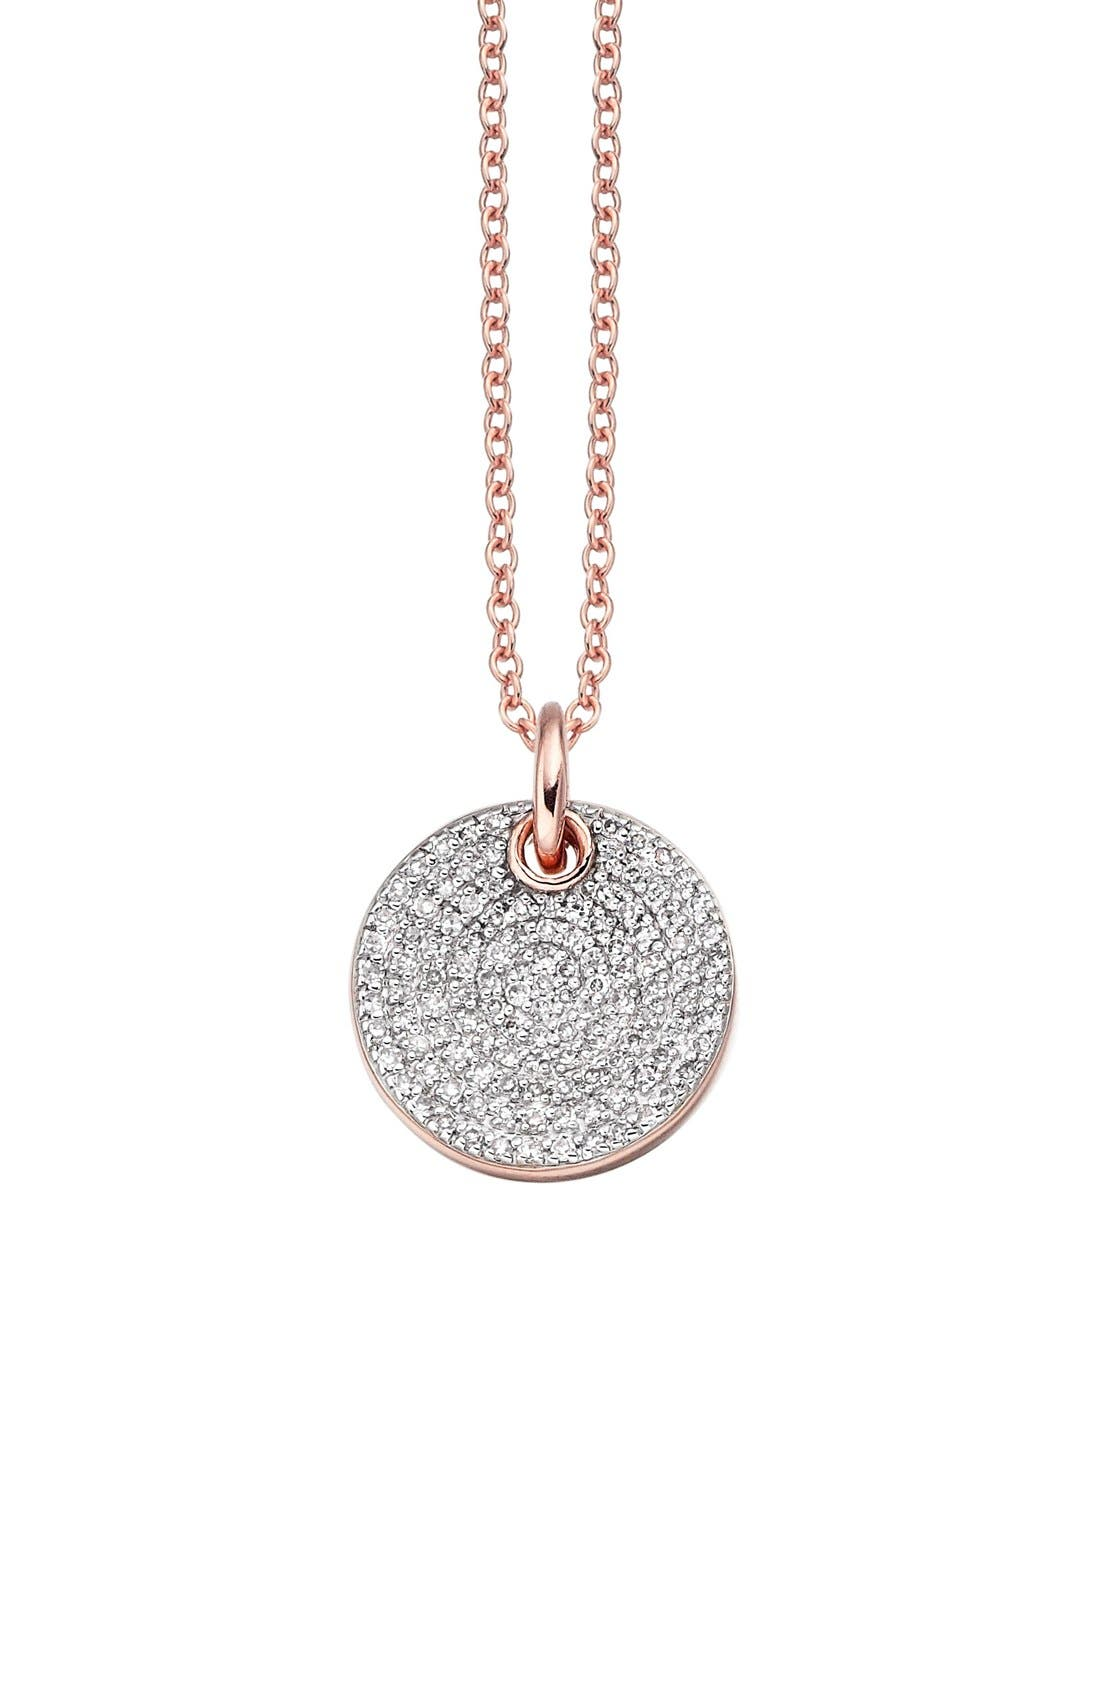 Monica Vinader 'Ava' Diamond Disc Pendant